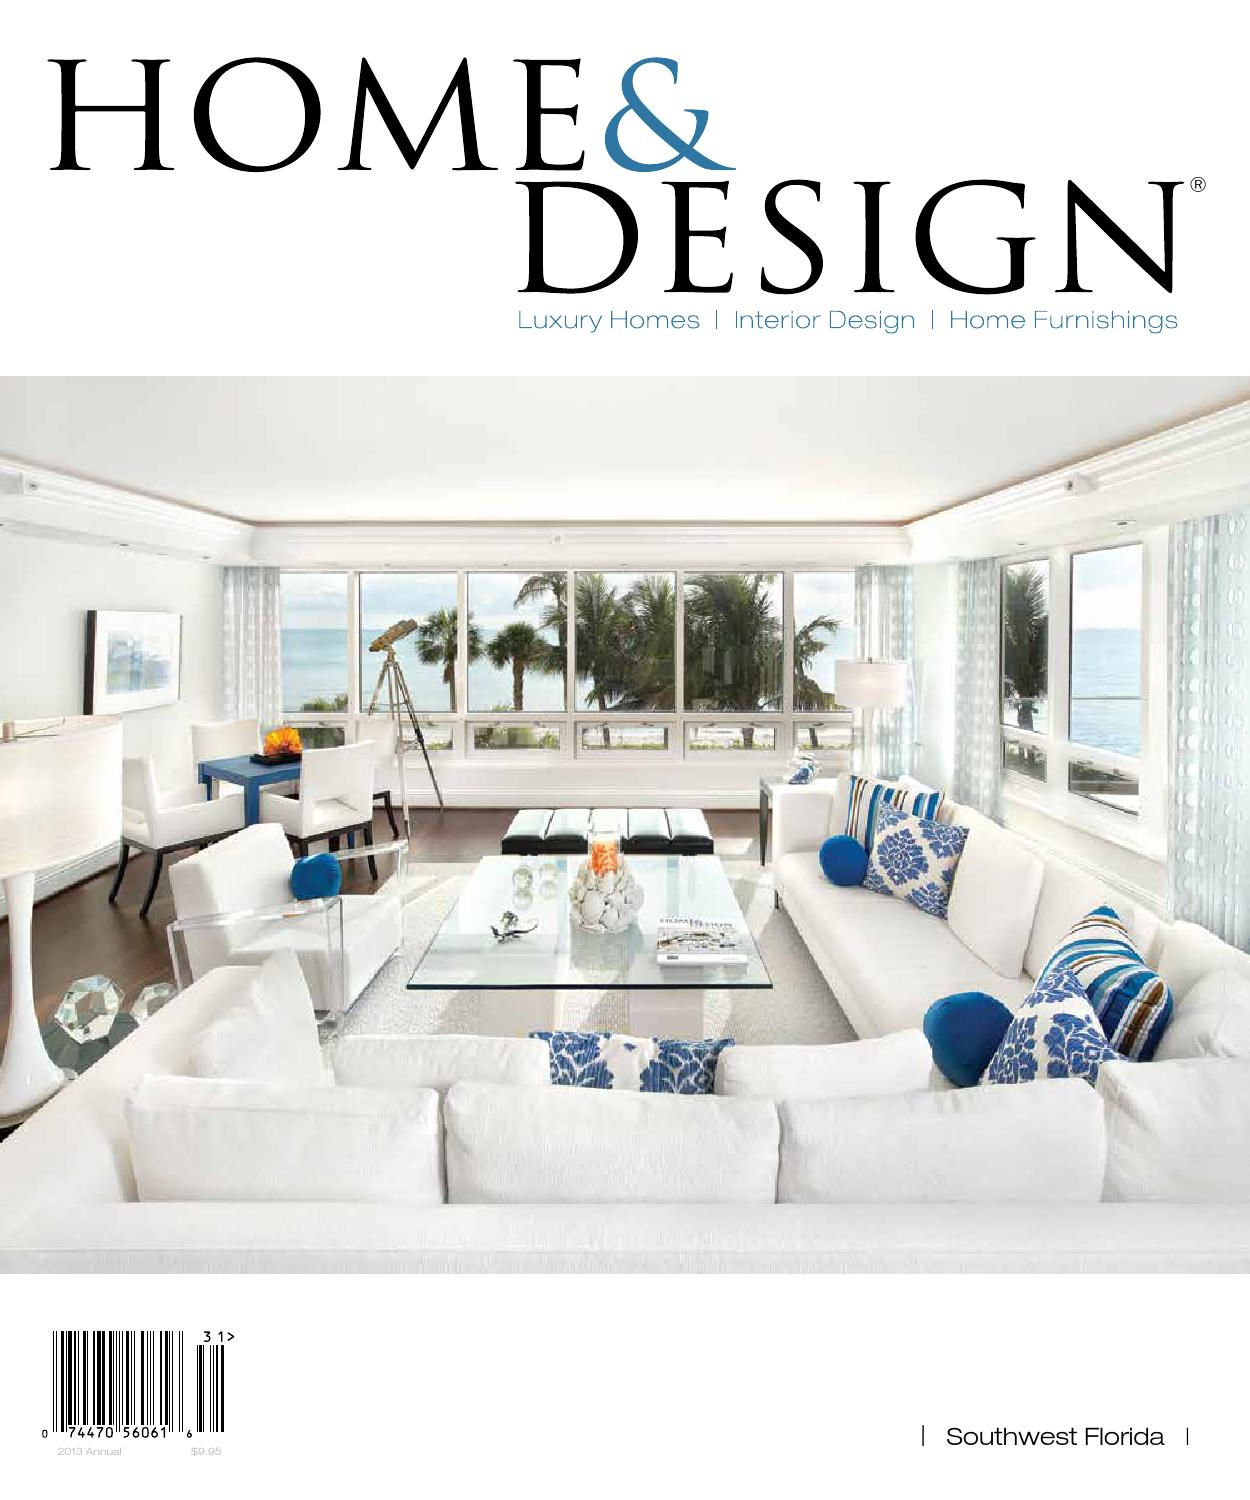 Issuu home design magazine annual resource guide for House designs magazine